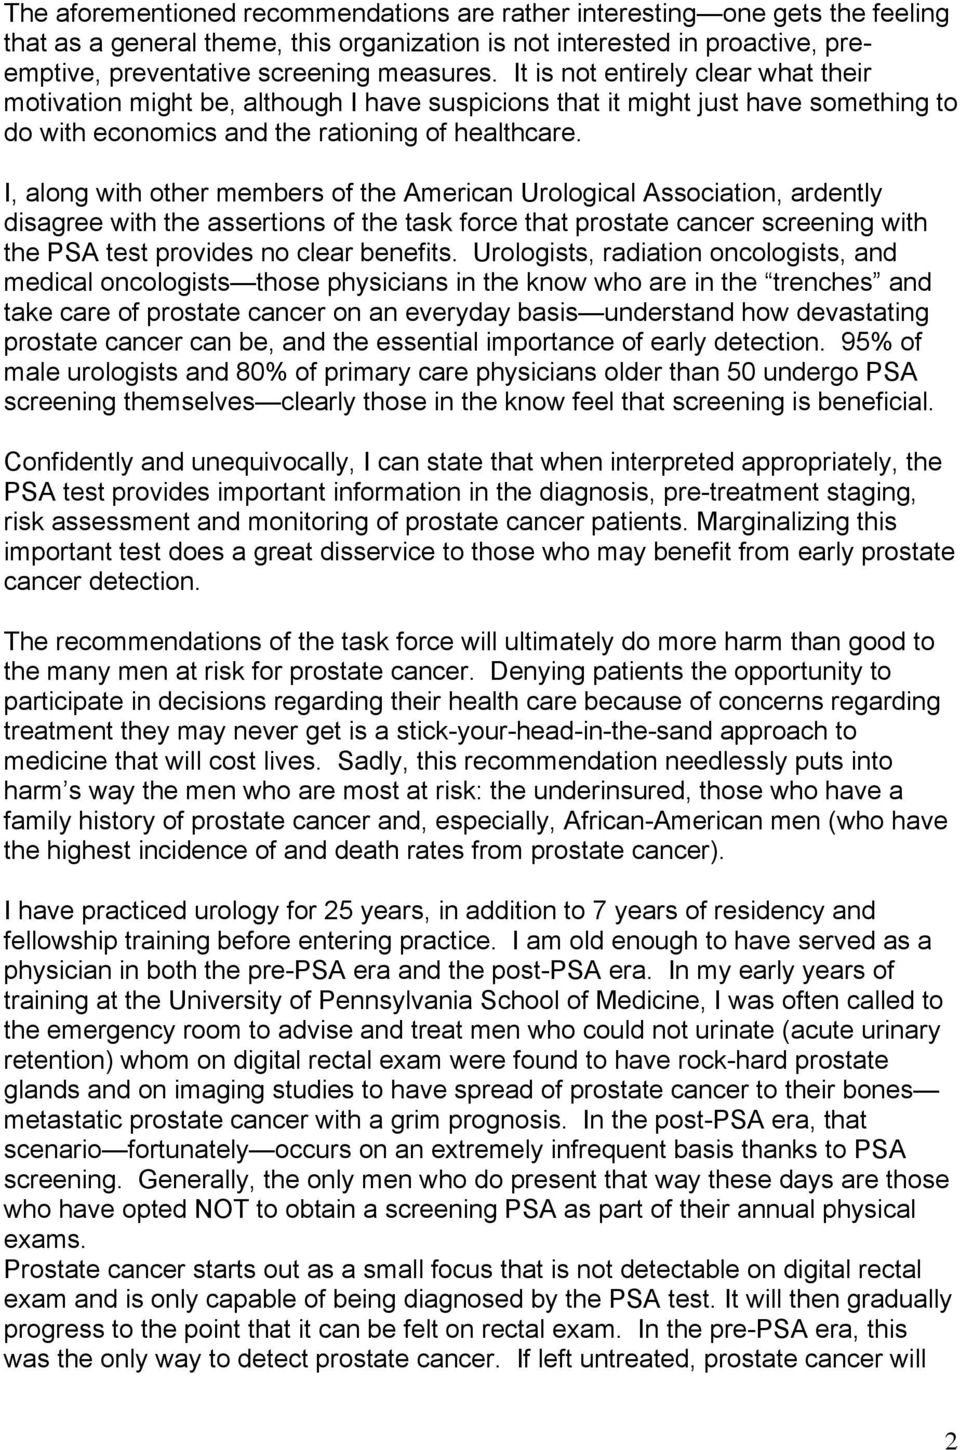 I, along with other members of the American Urological Association, ardently disagree with the assertions of the task force that prostate cancer screening with the PSA test provides no clear benefits.